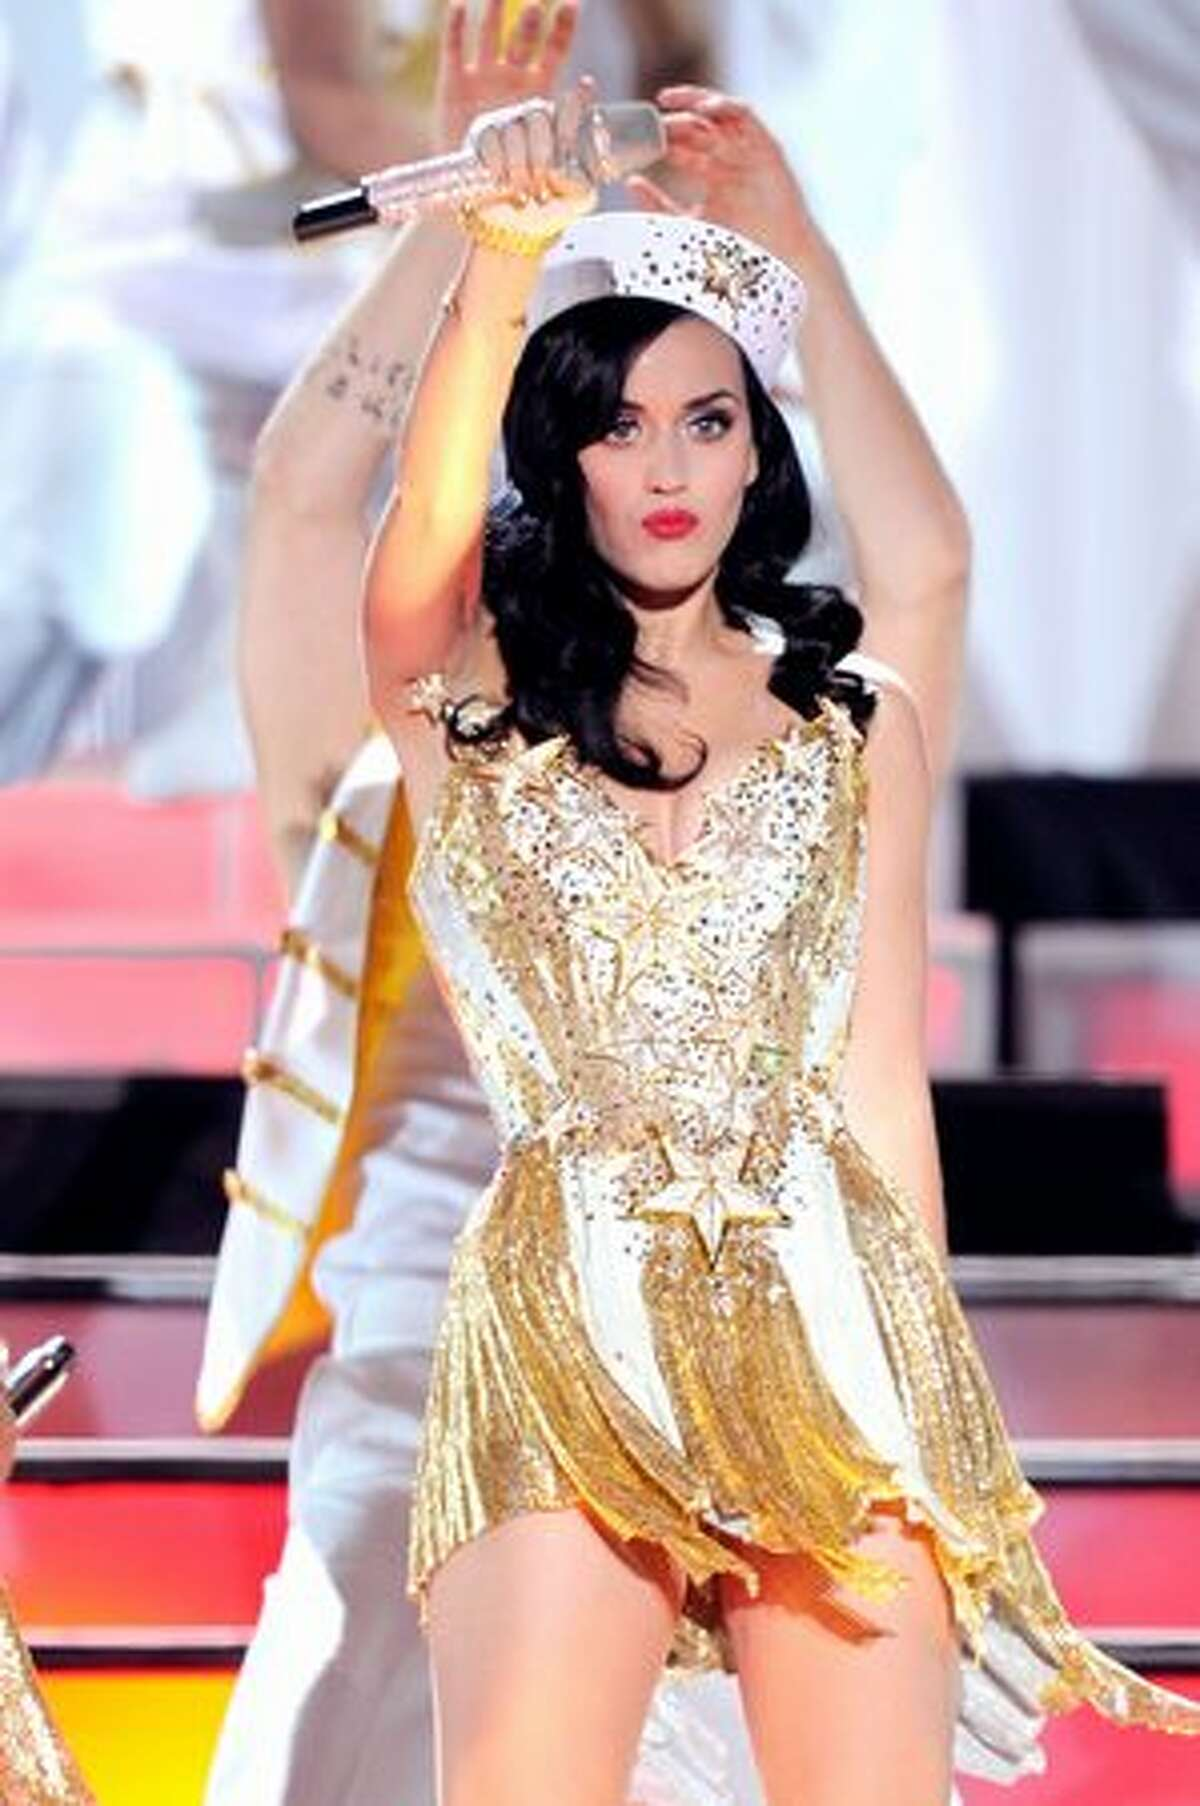 Singer Katy Perry performs onstage.